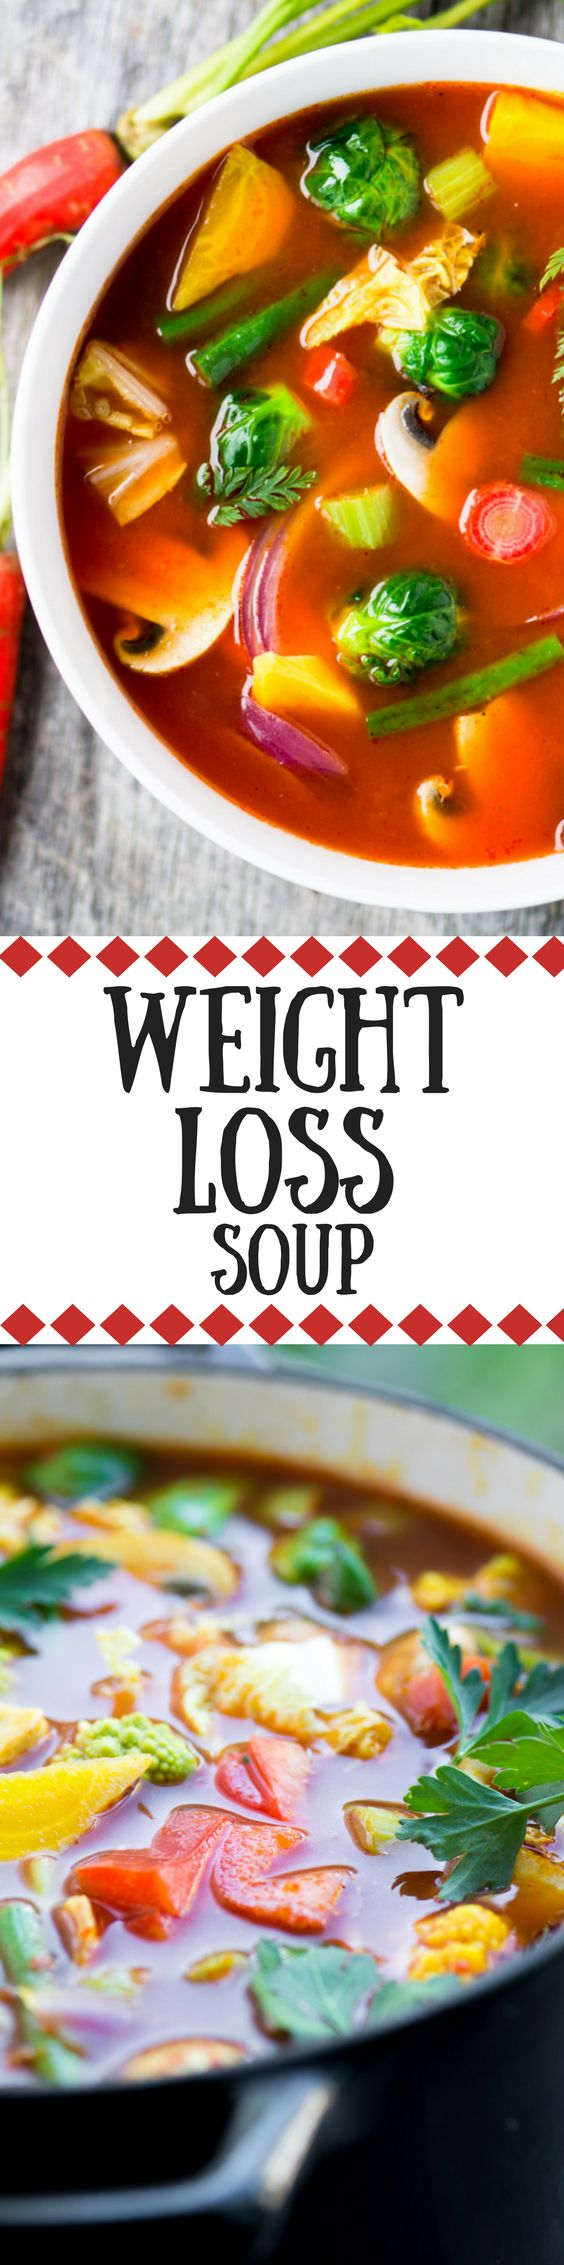 Winter Weight Loss Soup ~ this revitalizing soup is satisfying and delicious.  I don't know where I'd be without it ~ probably a few pounds heavier, that's for sure!